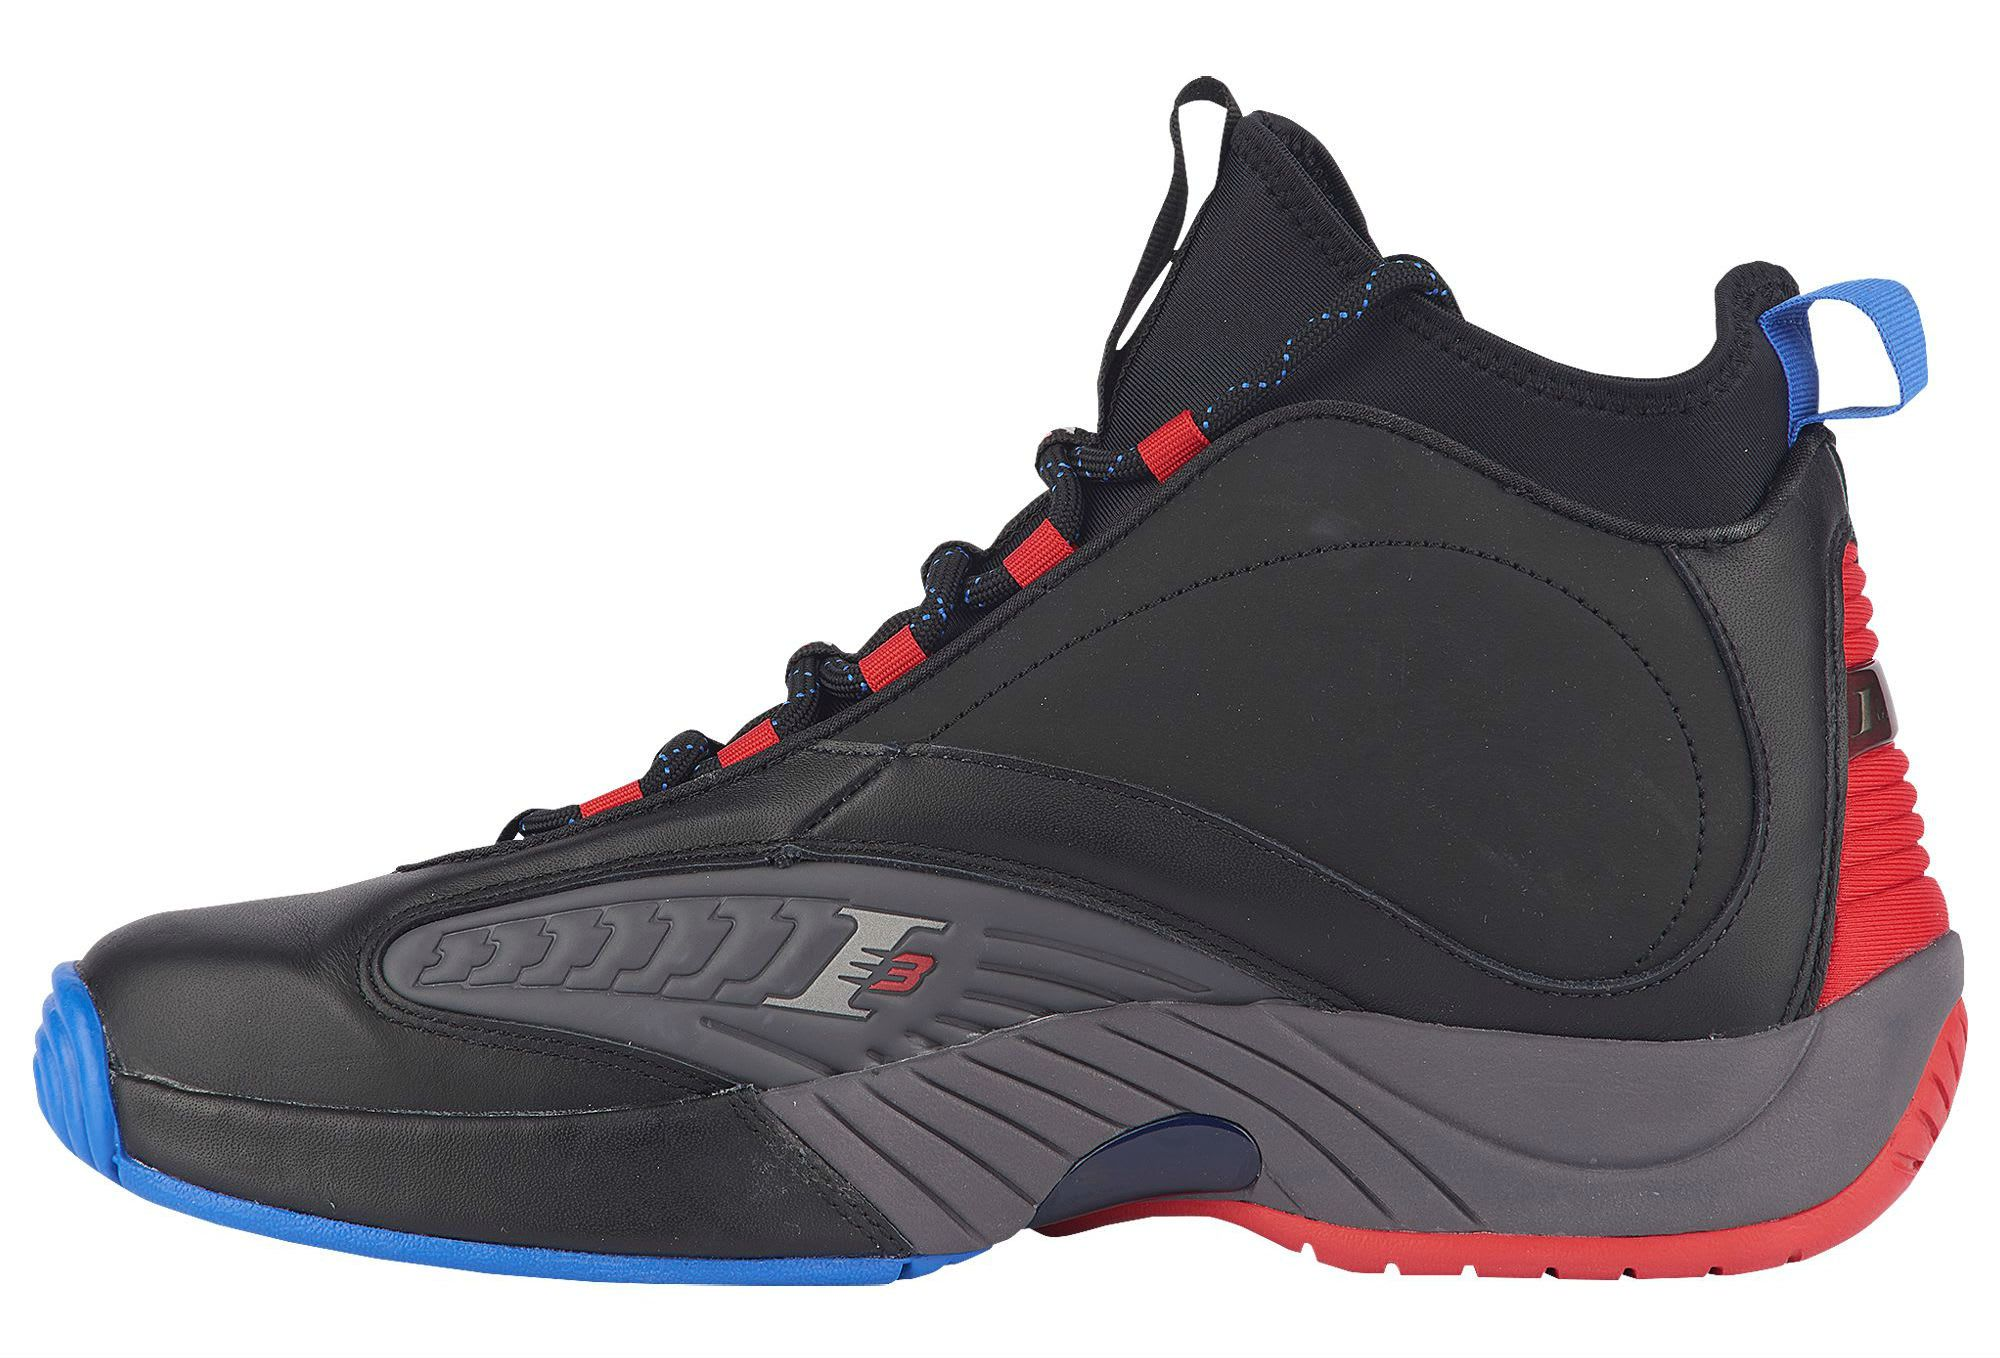 82c74a0d3f55 Reebok Answer 4.5 Black Ash Grey Primal Red Vital Blue Release Date CN5841  Medial